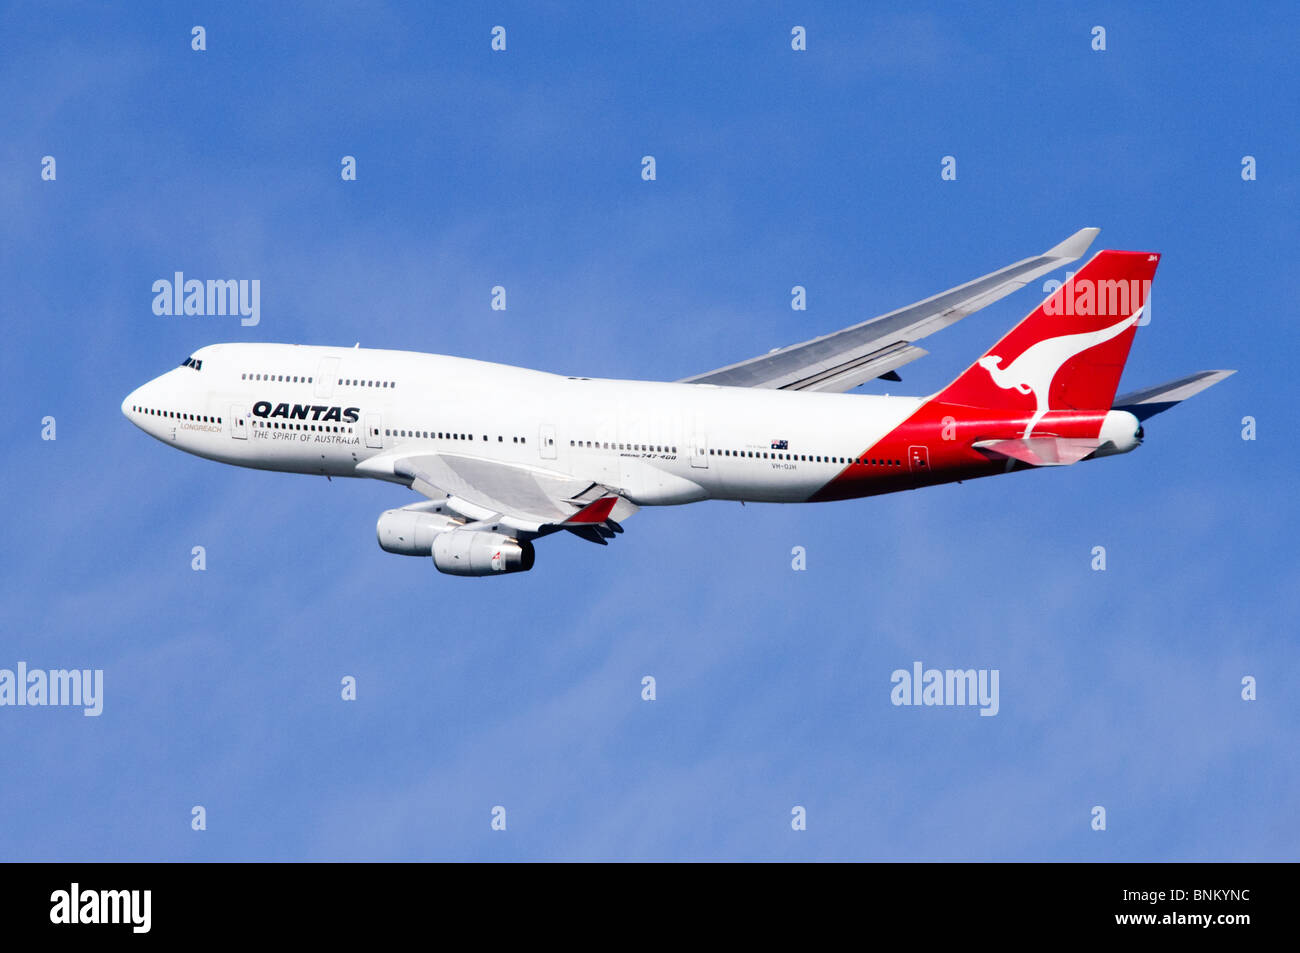 Boeing 747 operated by Qantas climbing out from take off at London Heathrow Airport, UK. - Stock Image